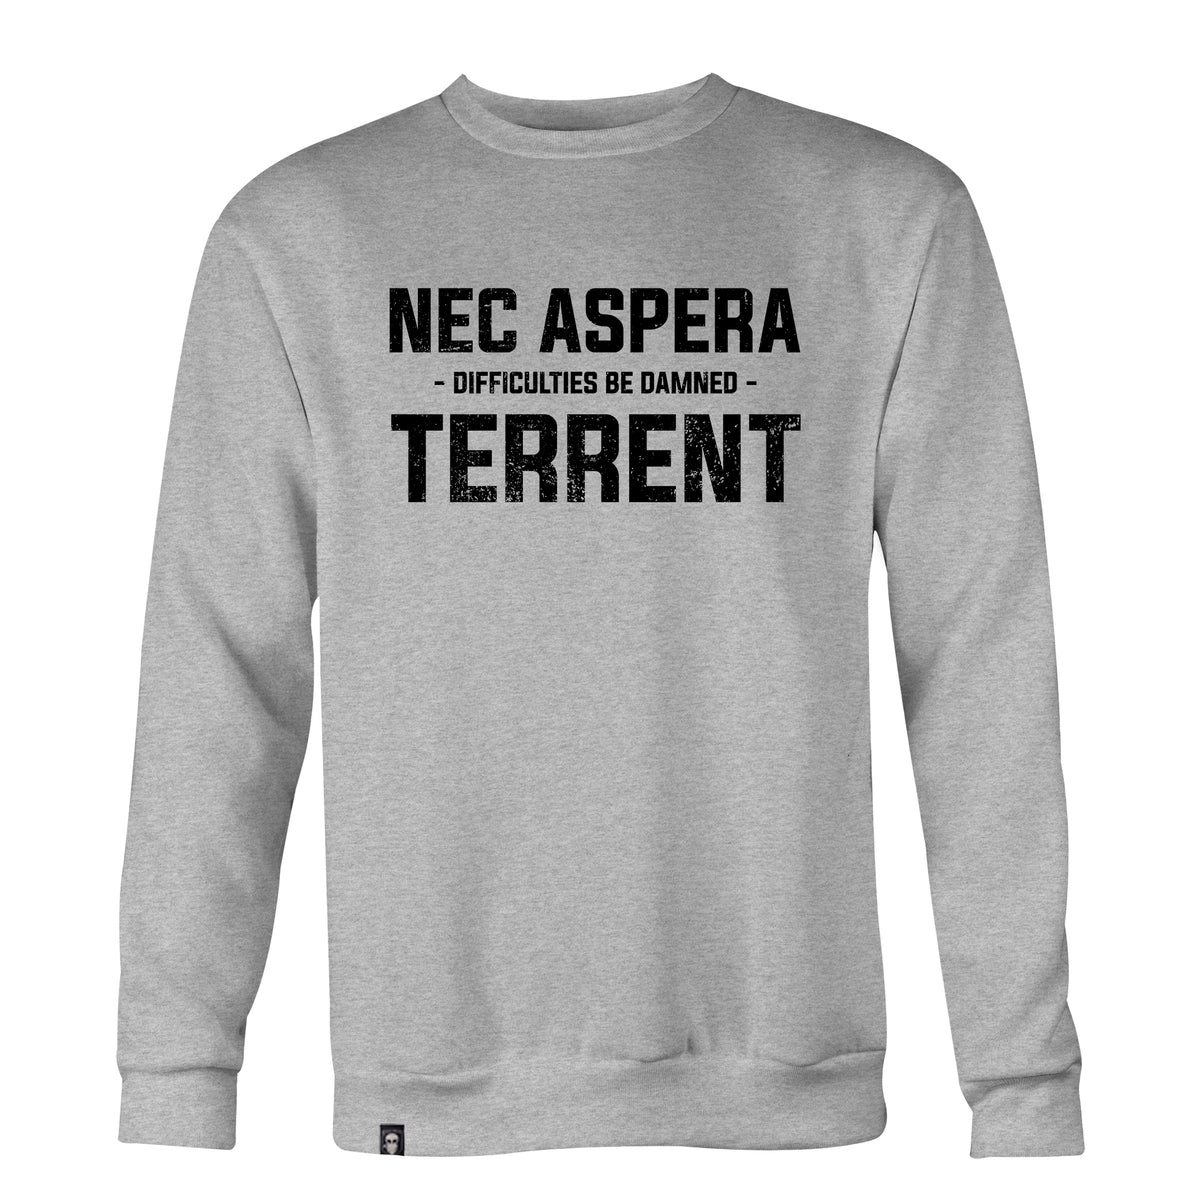 NEC ASPERA TERRENT (DUKE OF LANCS) SWEAT